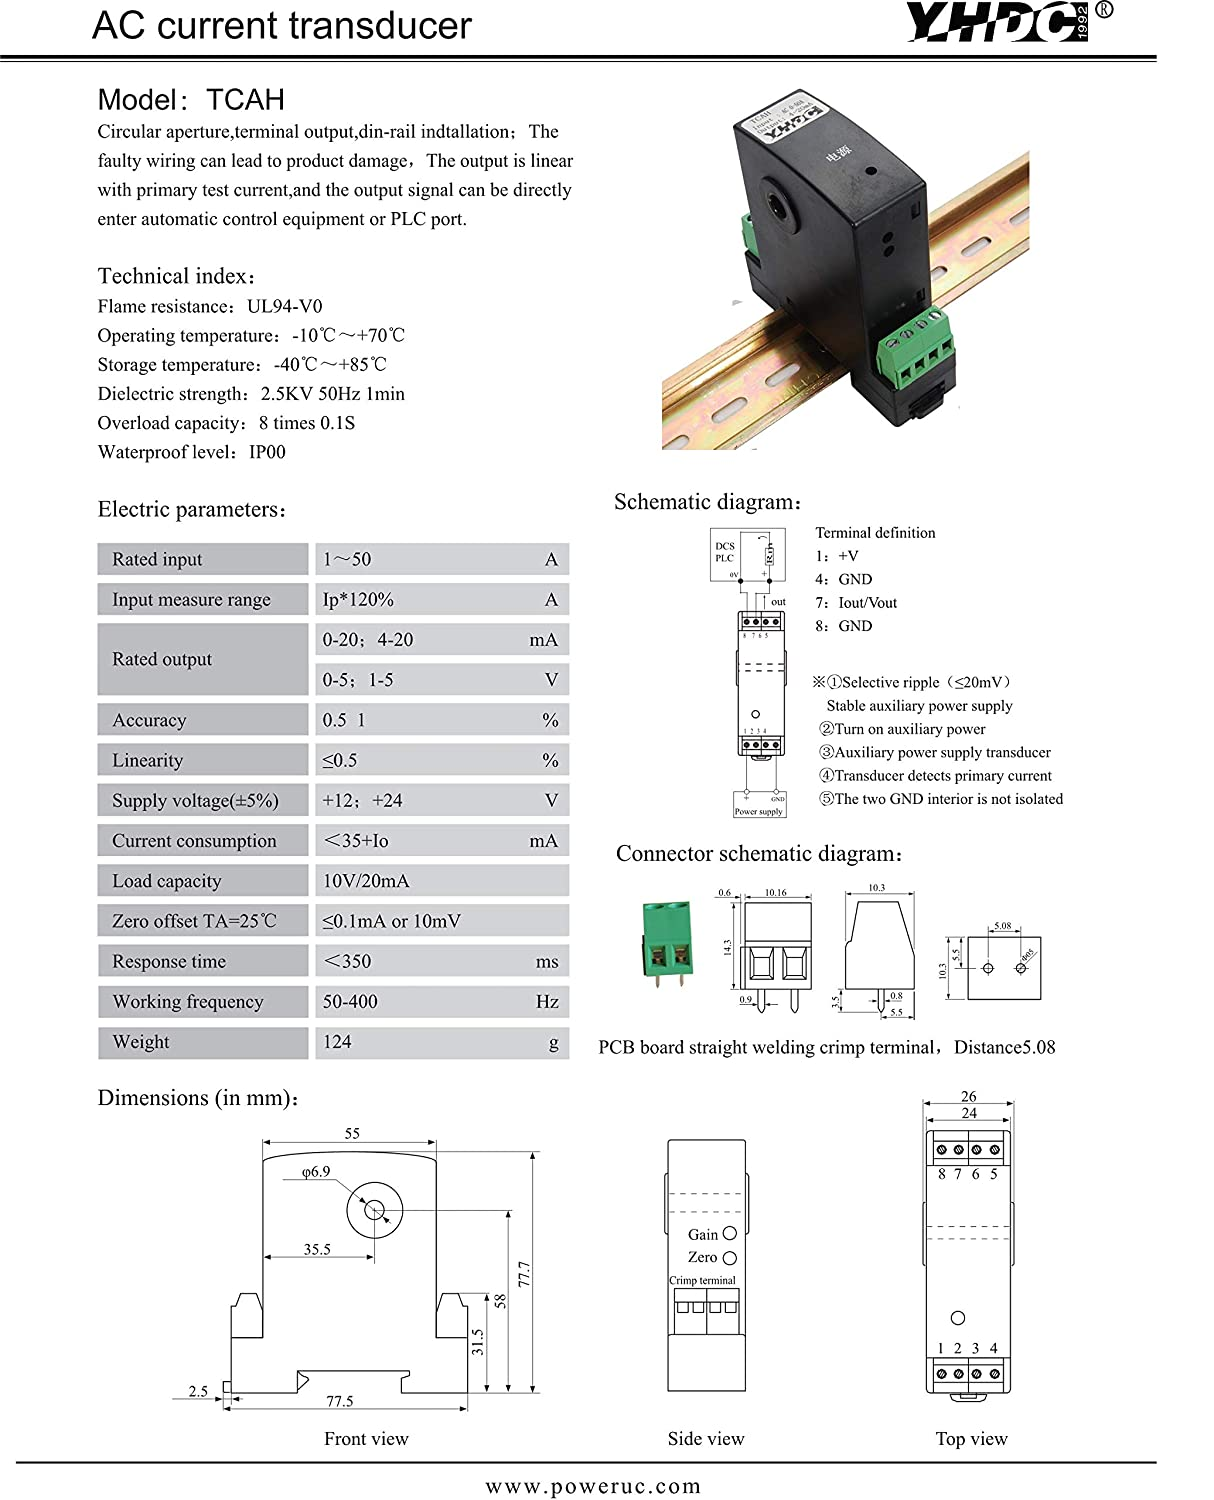 Electrical Equipment & Supplies YHDC AC Current Transmitter TCAH ...